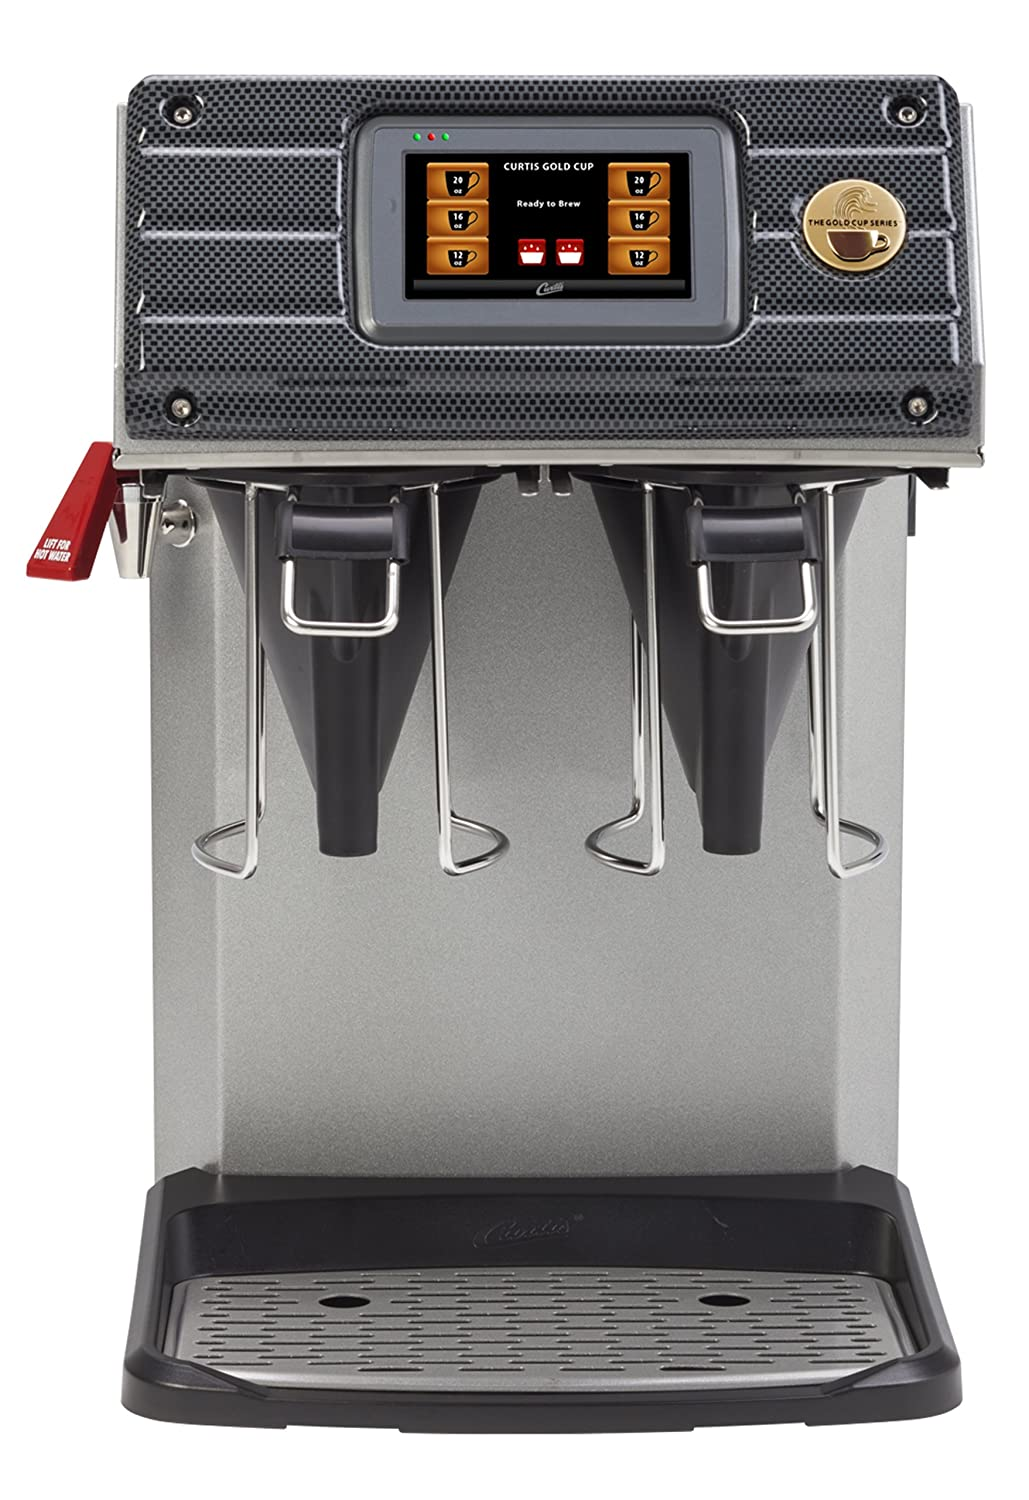 Wilbur Curtis Gold Cup Single Cup Brewer - Commercial Coffee Brewer with Digital Control Module and Self-Diagnostic System for Gourmet Results - CGC (Each) Wilbur Curtis Co. Inc.